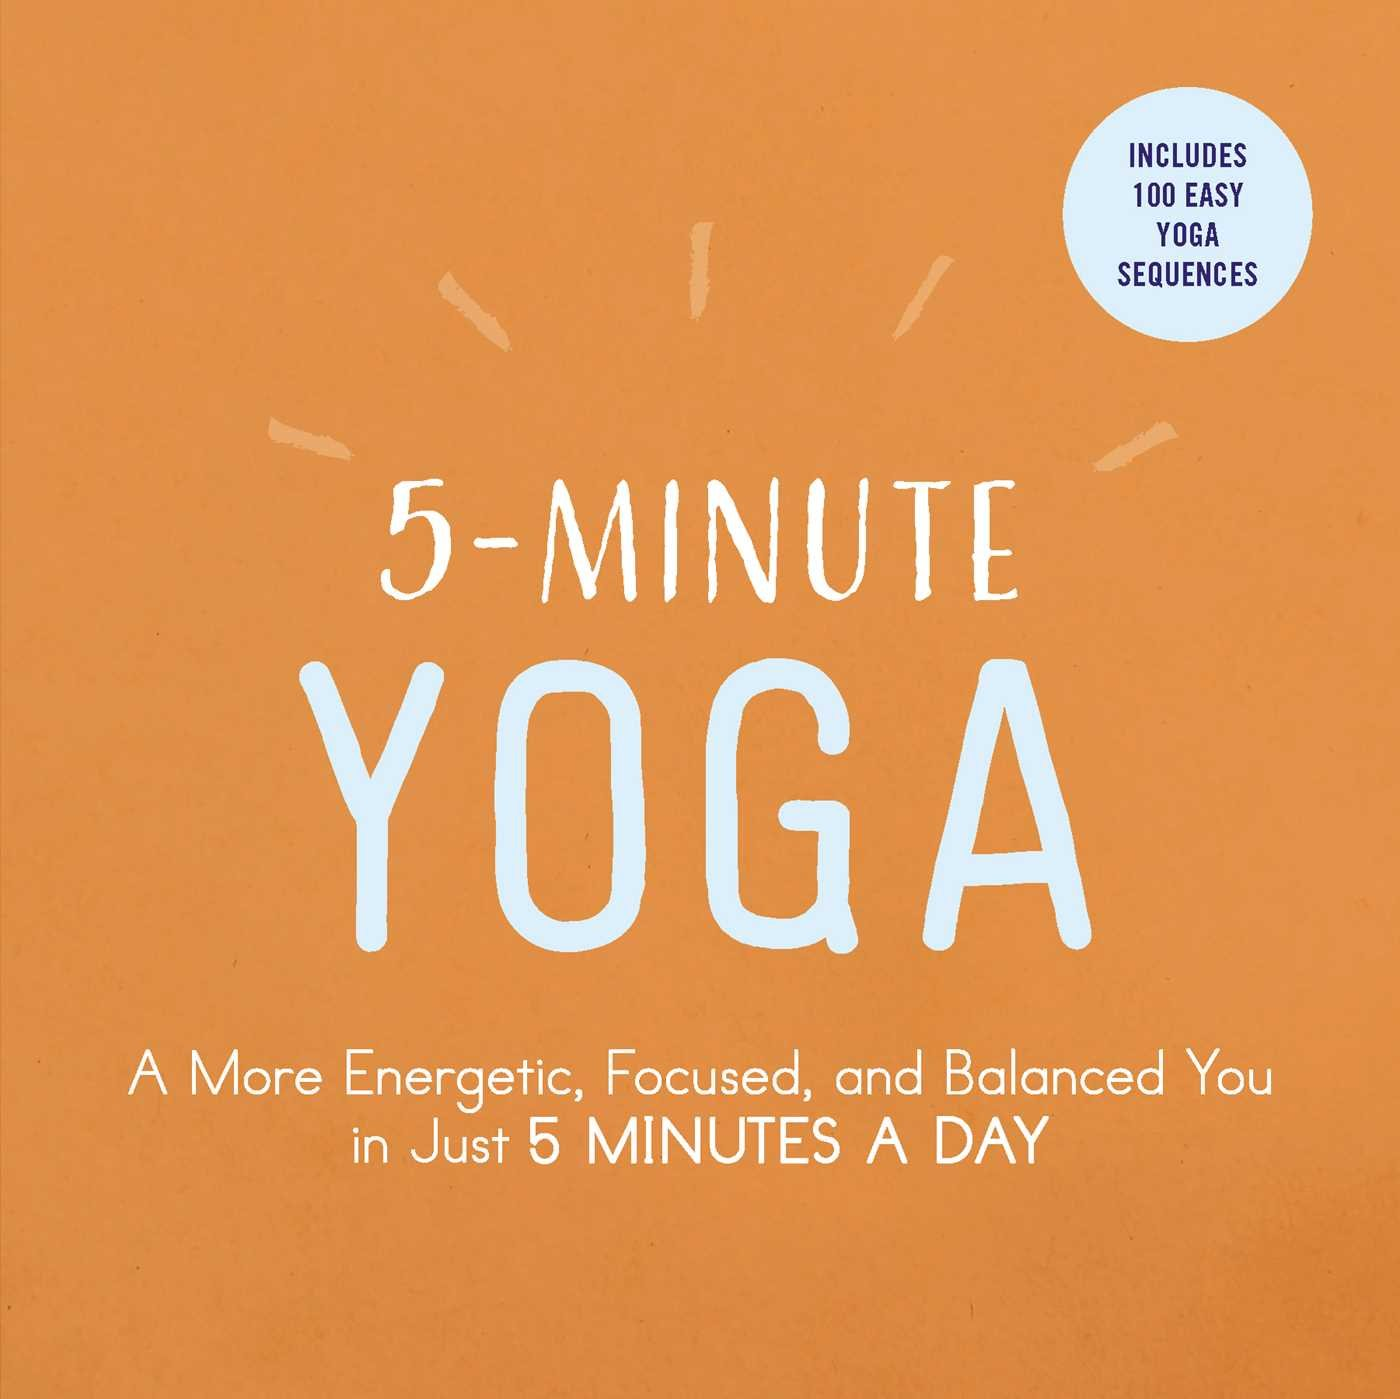 5-Minute Yoga: A More Energetic, Focused, and Balanced You i